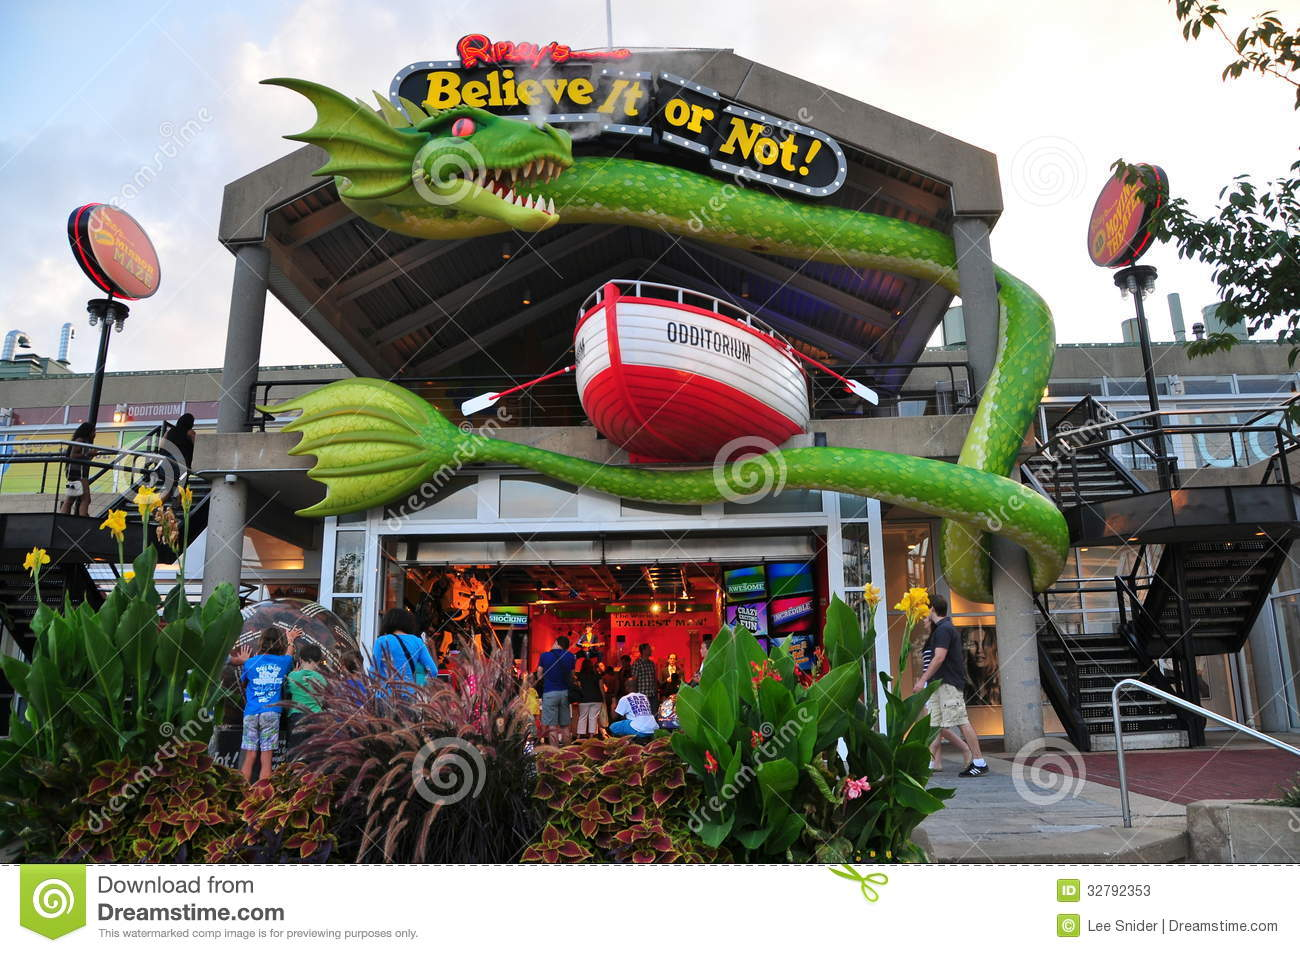 National Harbor Maryland >> Baltimore, MD: Ripley's Believe It Or Not Museum Editorial Stock Photo - Image: 32792353